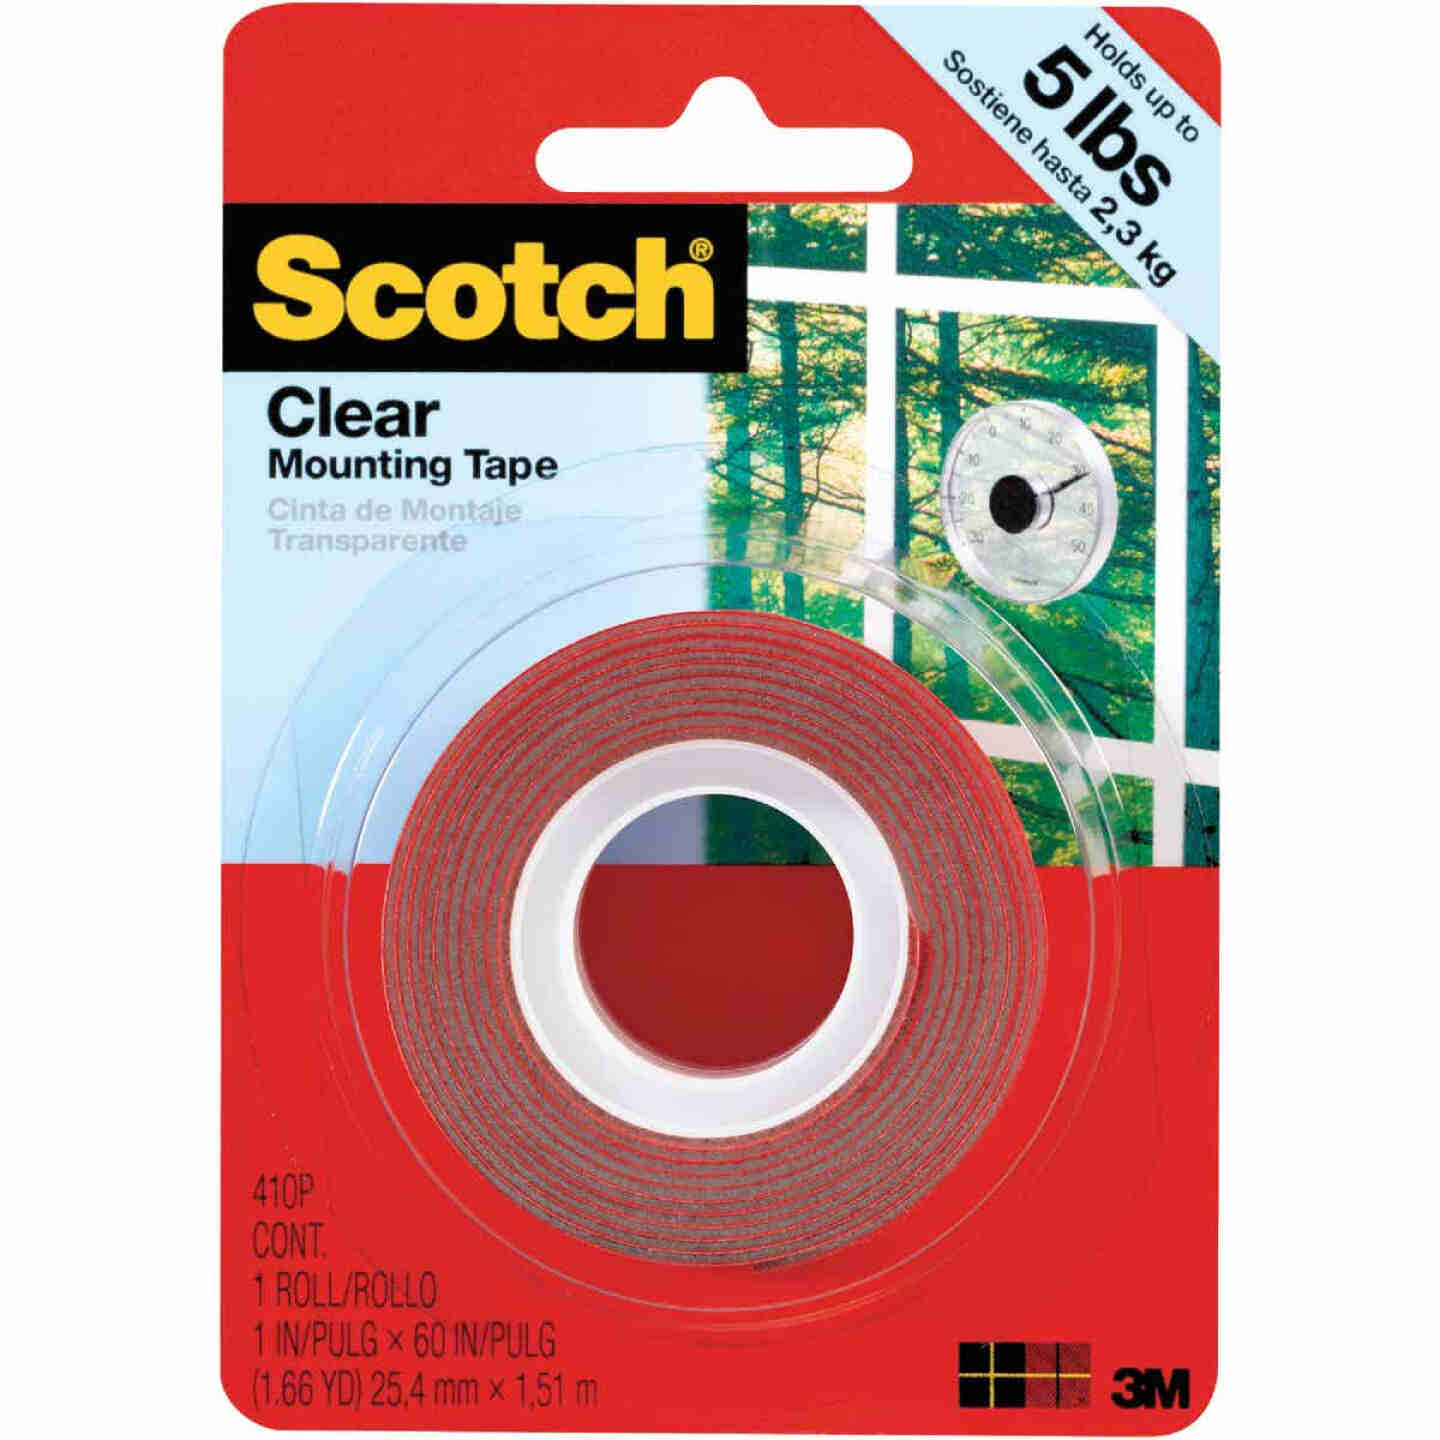 3M Scotch 1 In. x 60 In. Clear Double-Sided Mounting Tape (5 Lb. Capacity) Image 1